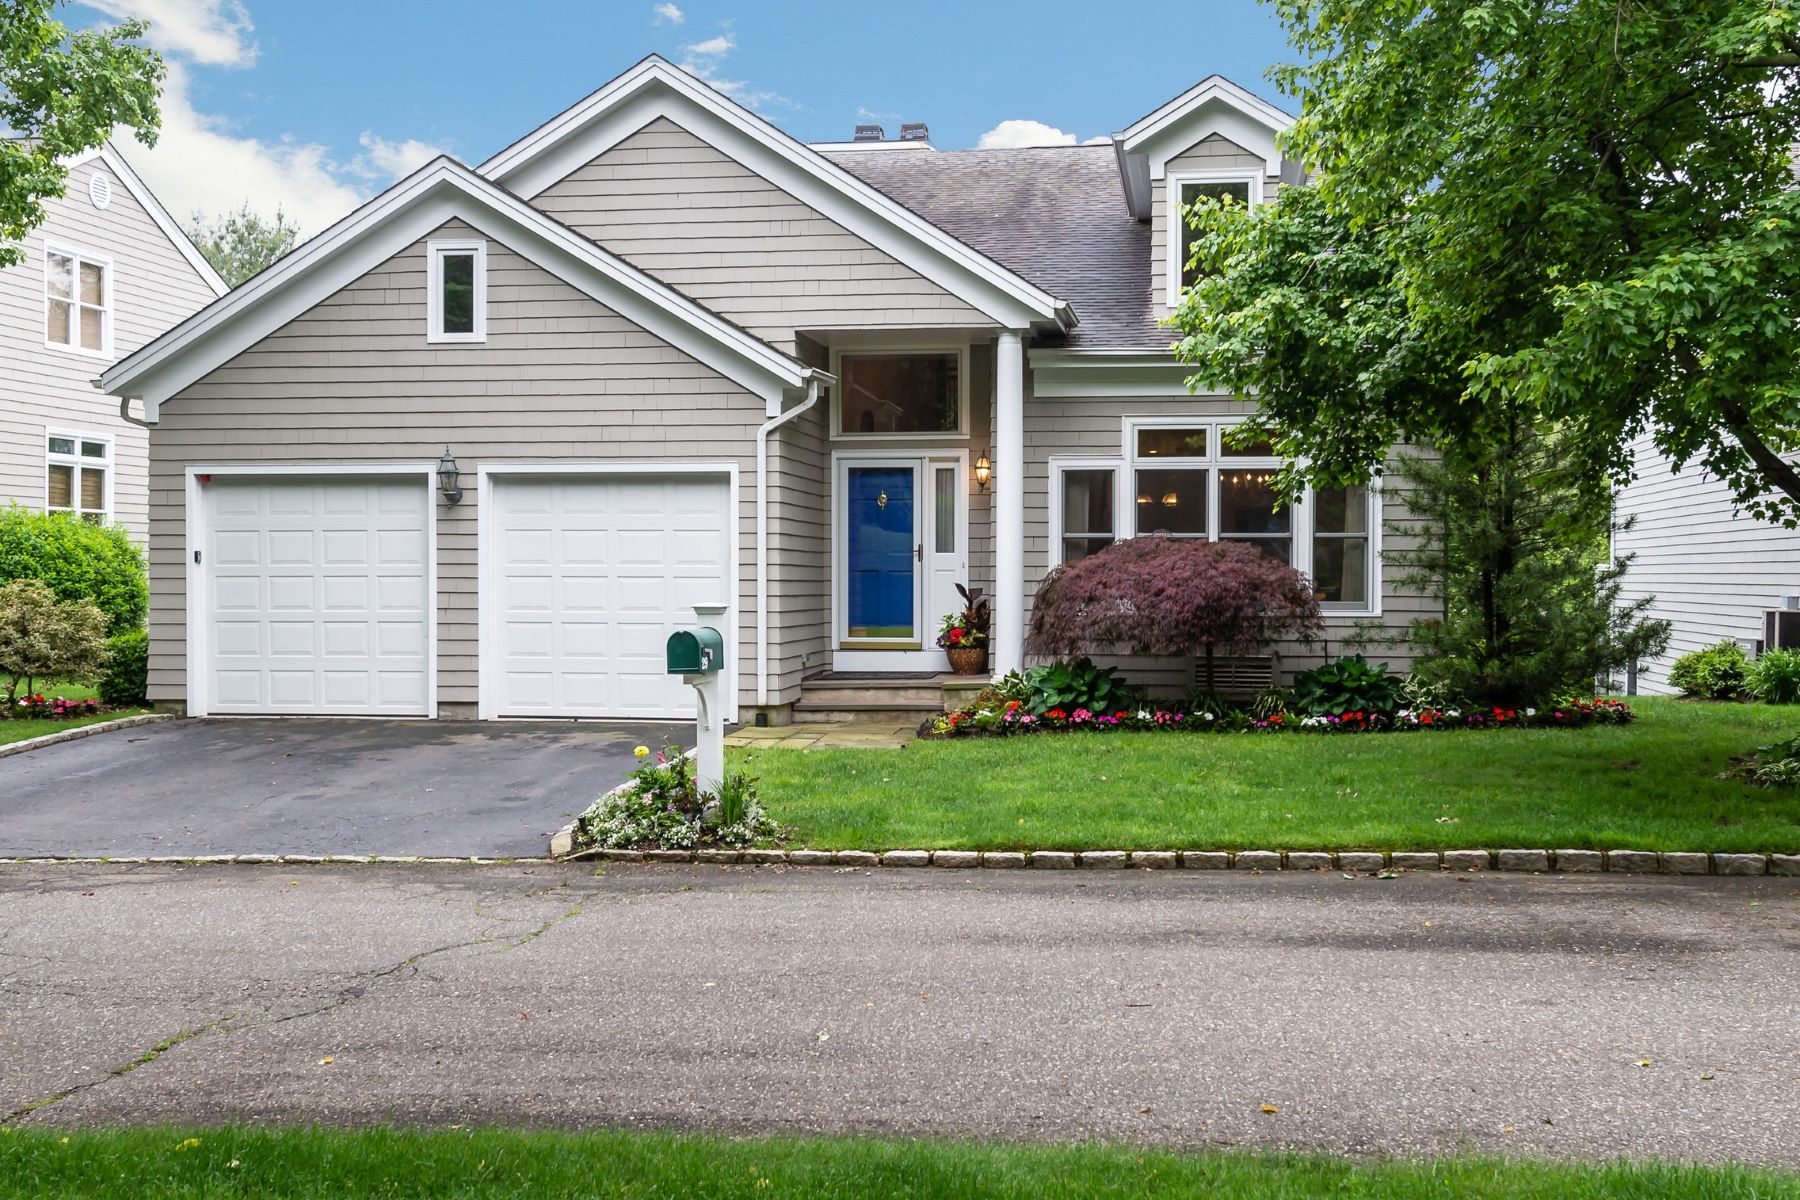 Single Family Homes for Active at Oyster Bay 29 Fieldstone Ln Oyster Bay, New York 11771 United States